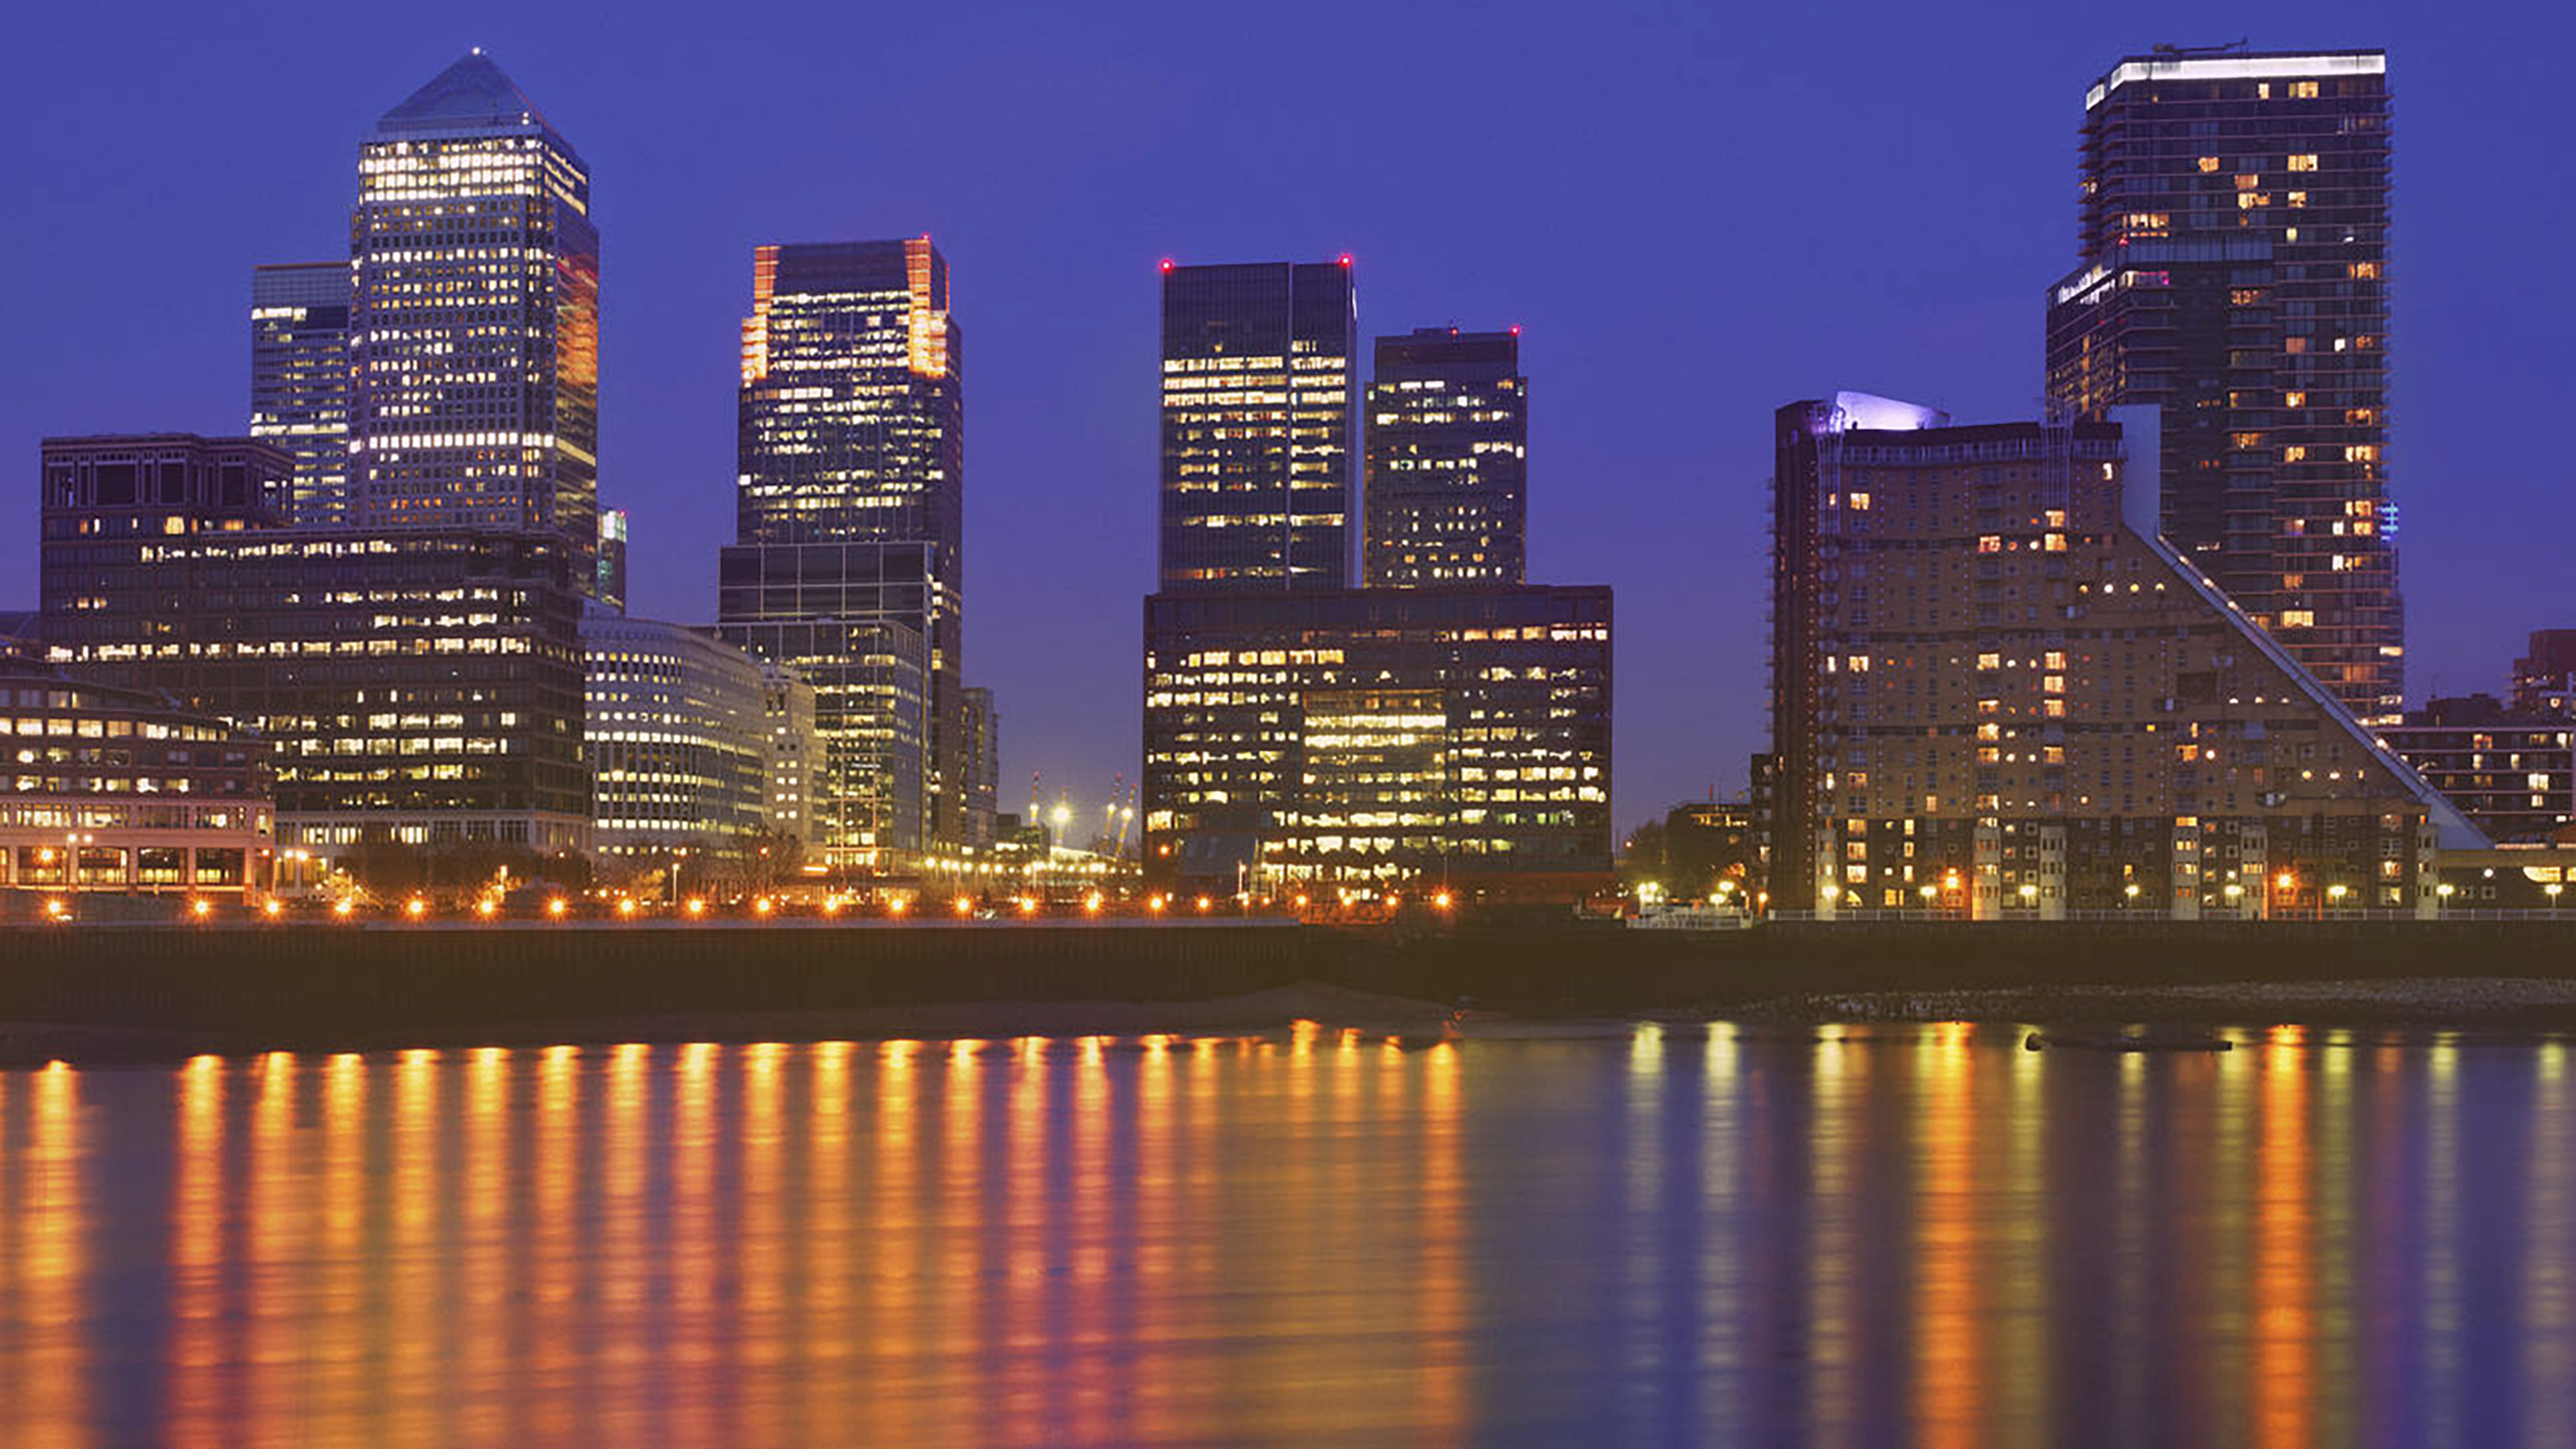 Canary wharf at night - LowRes Getty